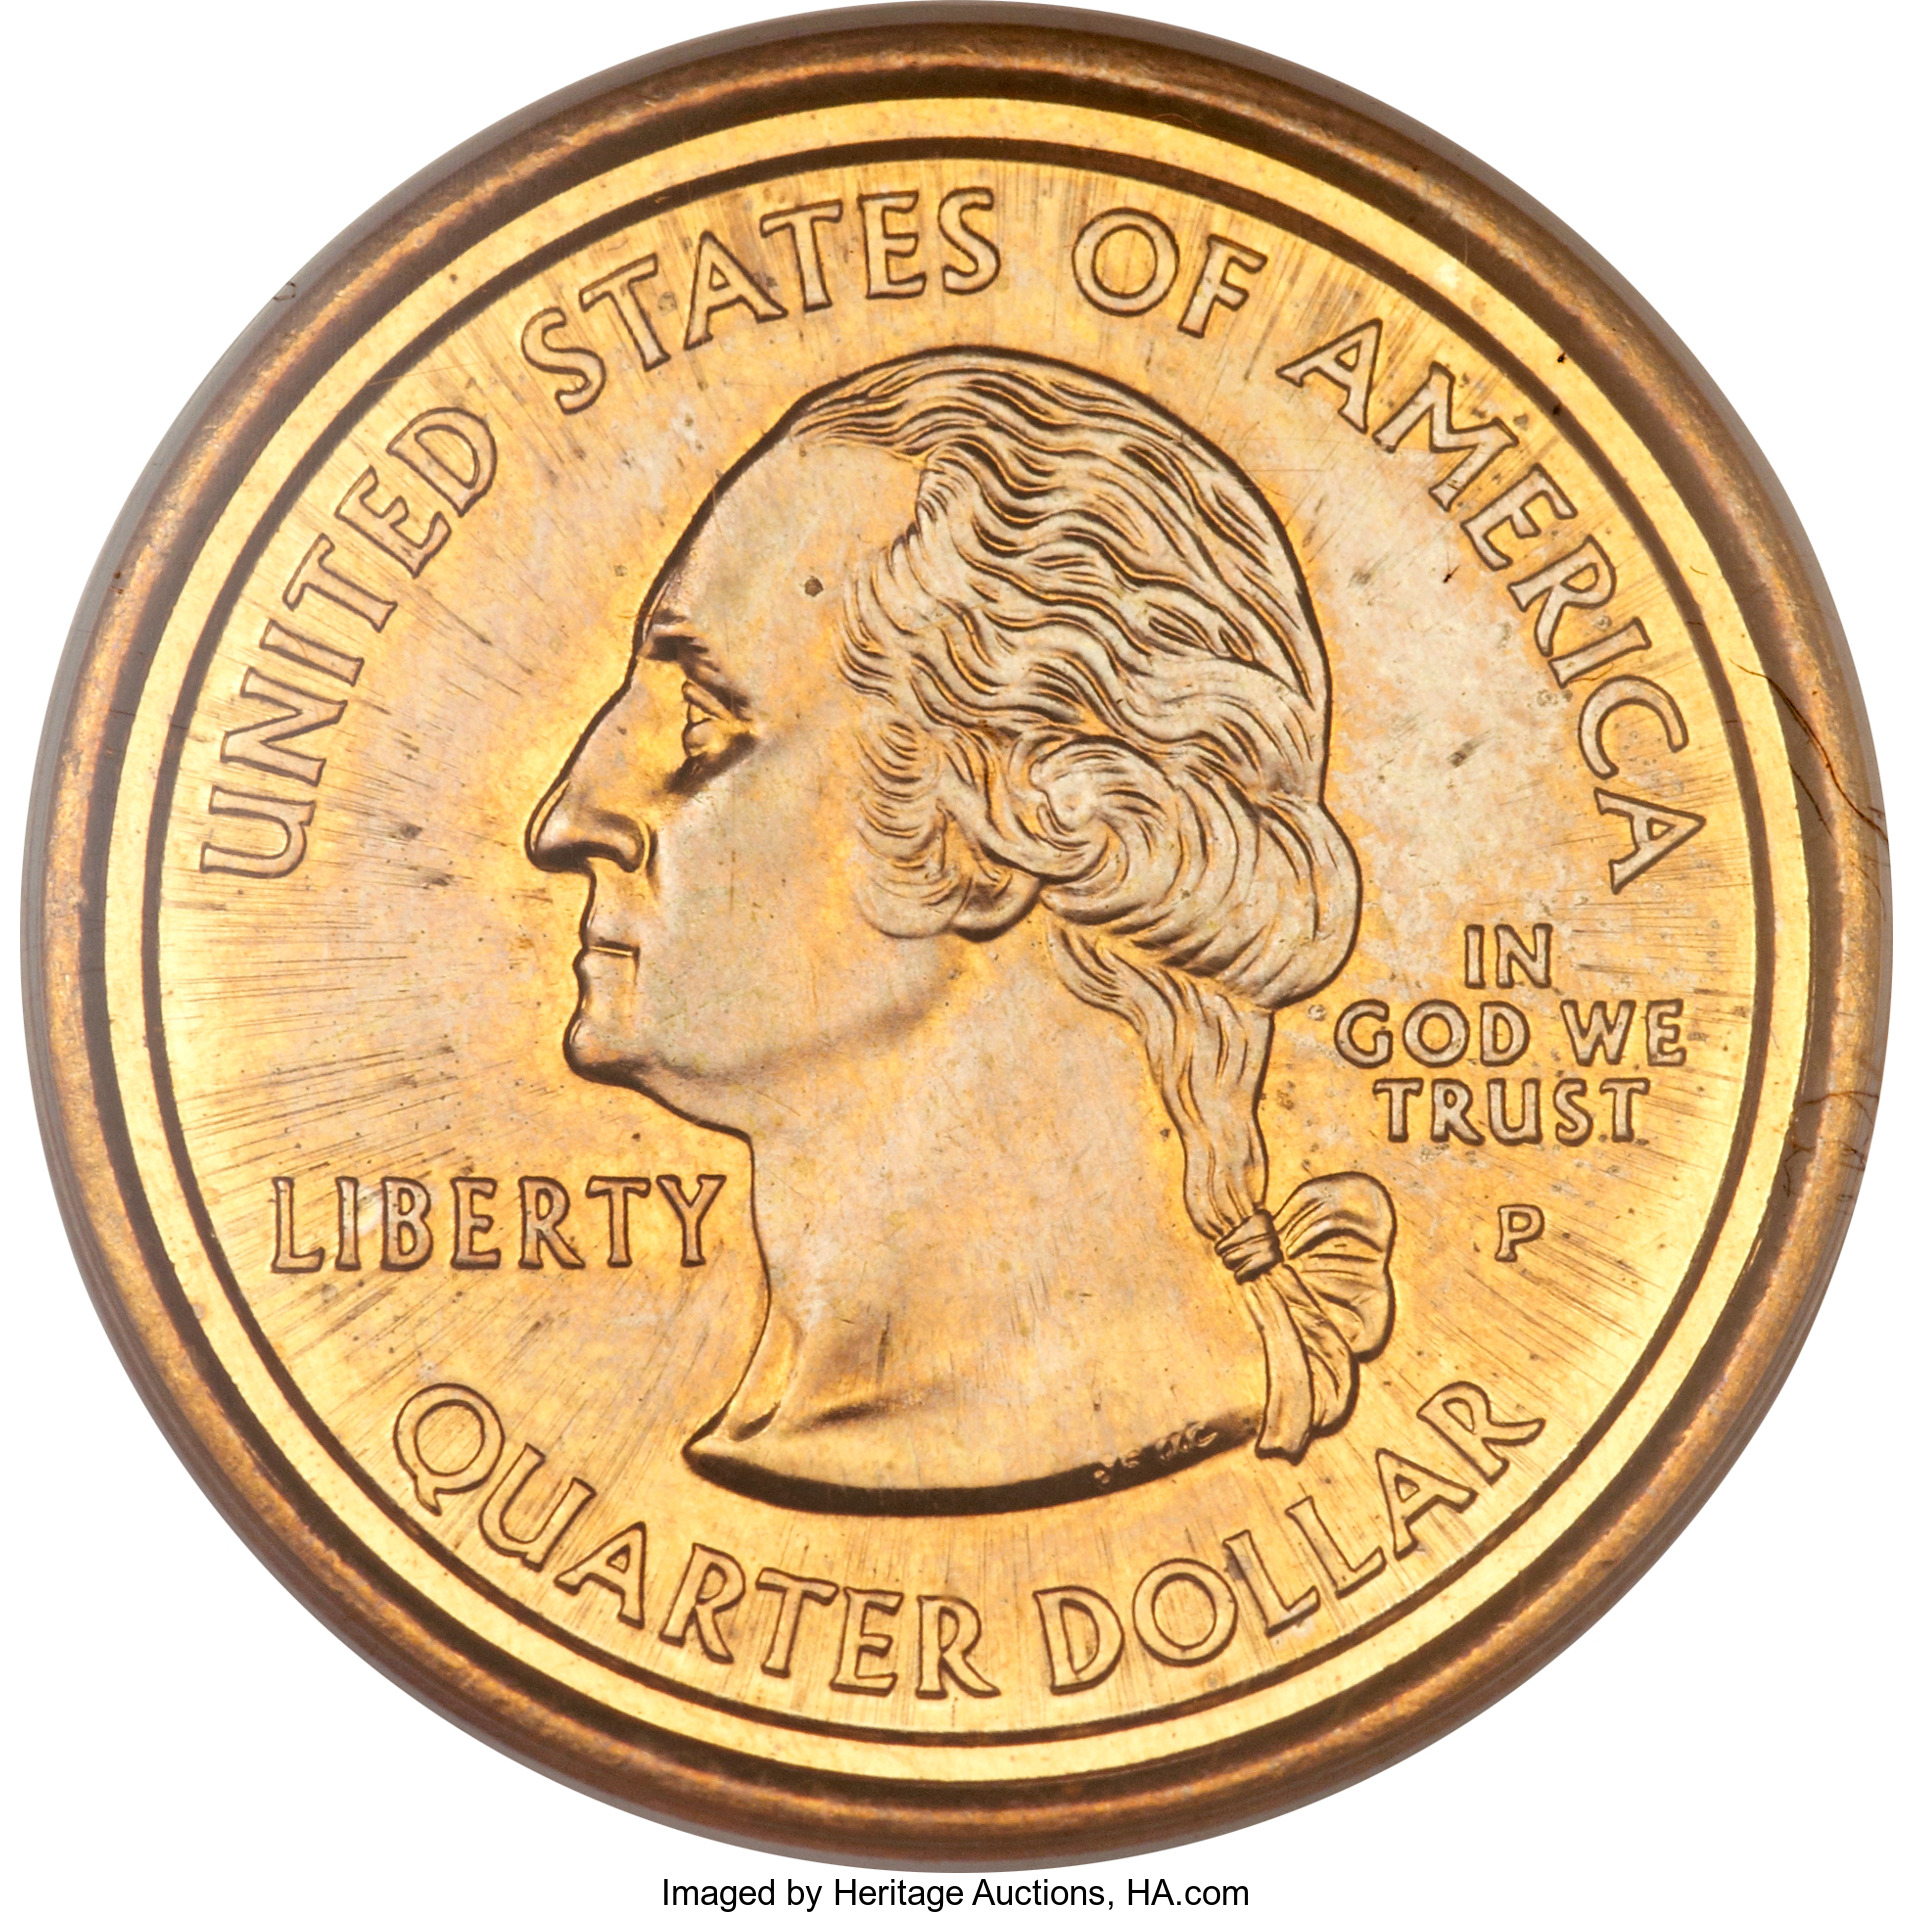 In 2000, collectors were astounded to learn that the Mint had produced coins that muled the obverse of a State quarter dollar with the reverse of a Sacagawea dollar.